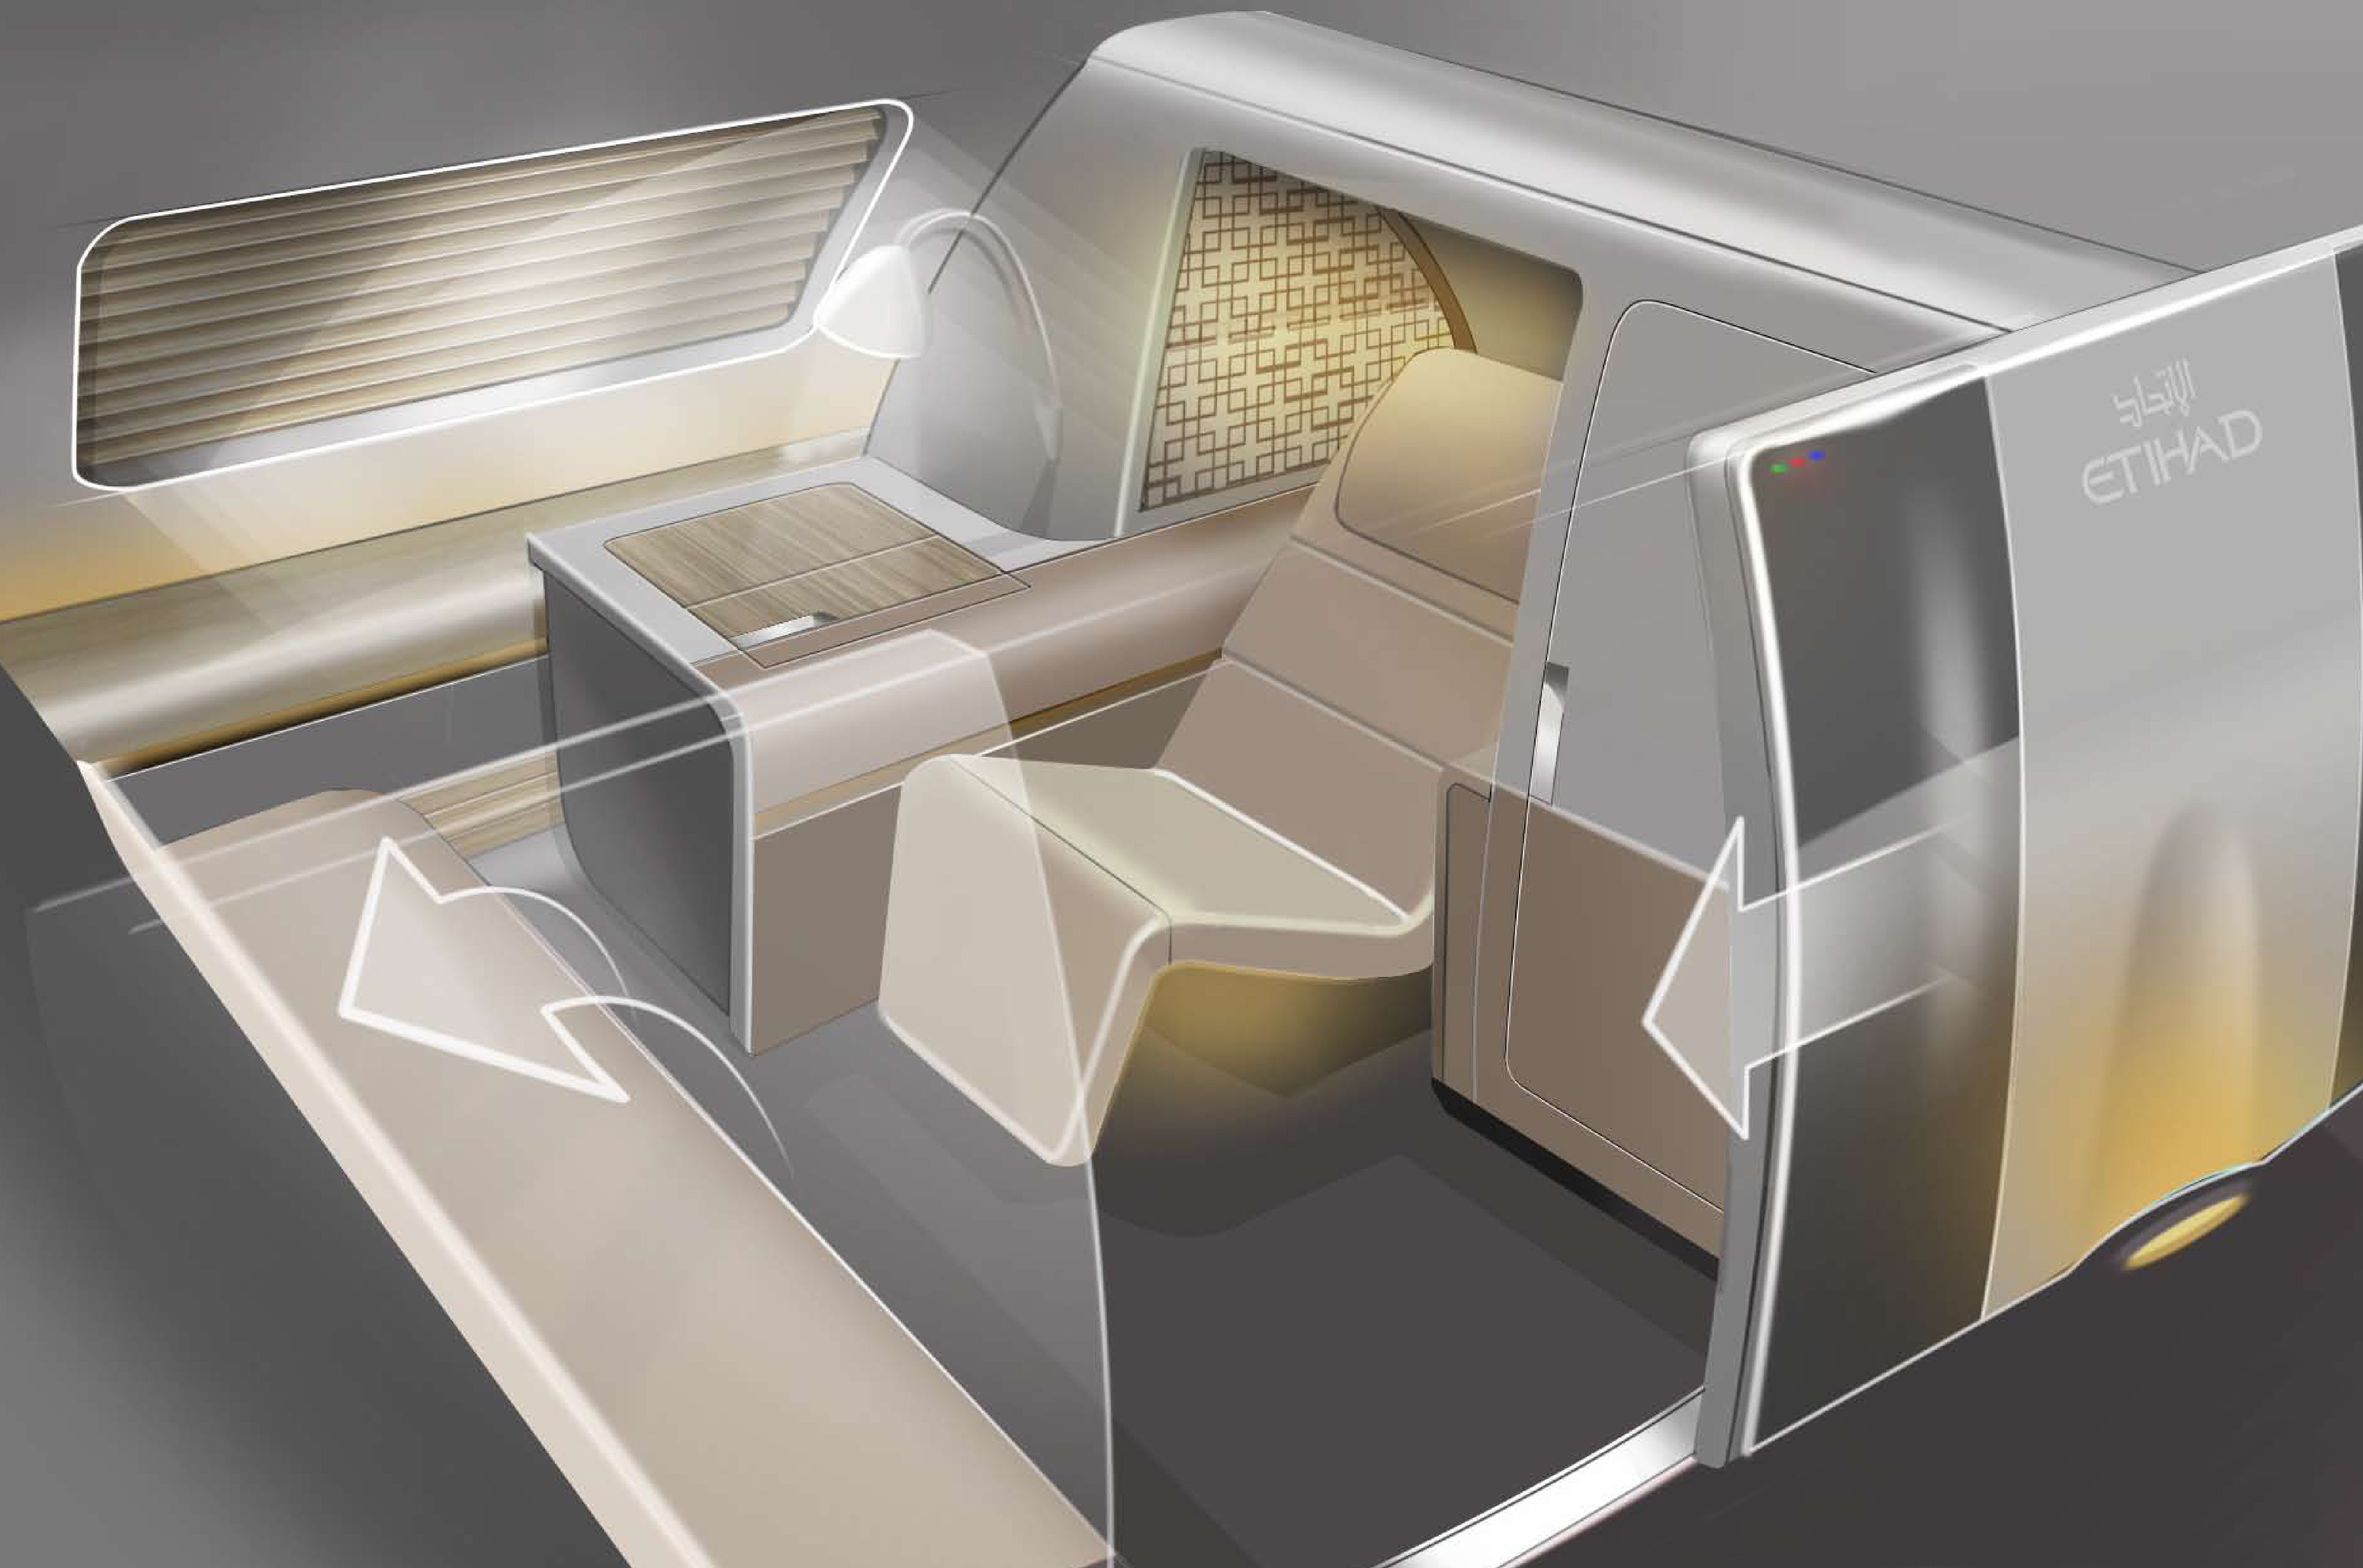 Feature Exclusive Indepth Look At Etihad's A380 Design